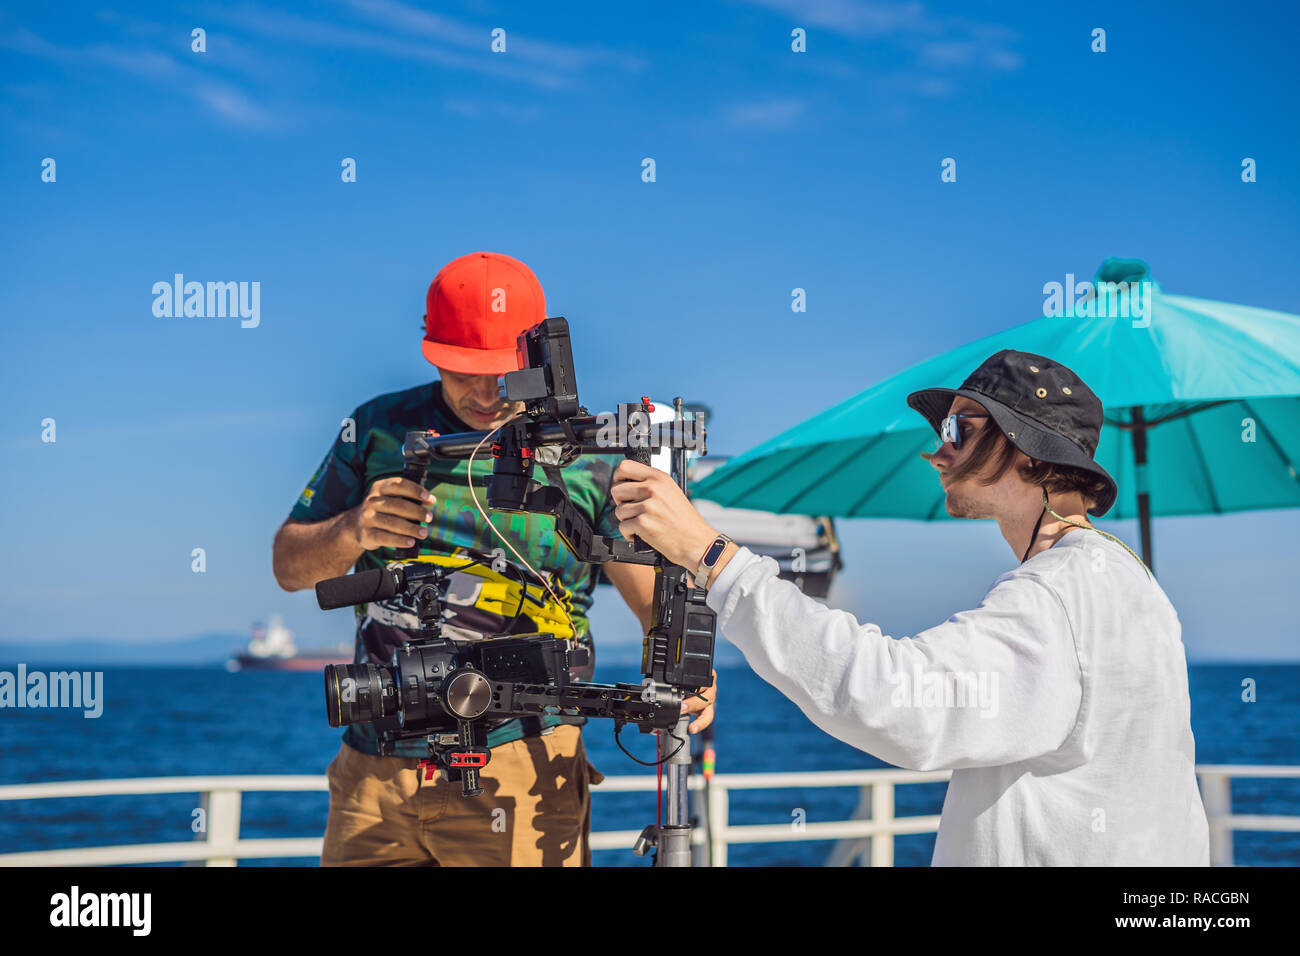 Steadicam operator and his assistant prepare camera and 3-axis stabilizer-gimbal for a commercial shoot - Stock Image